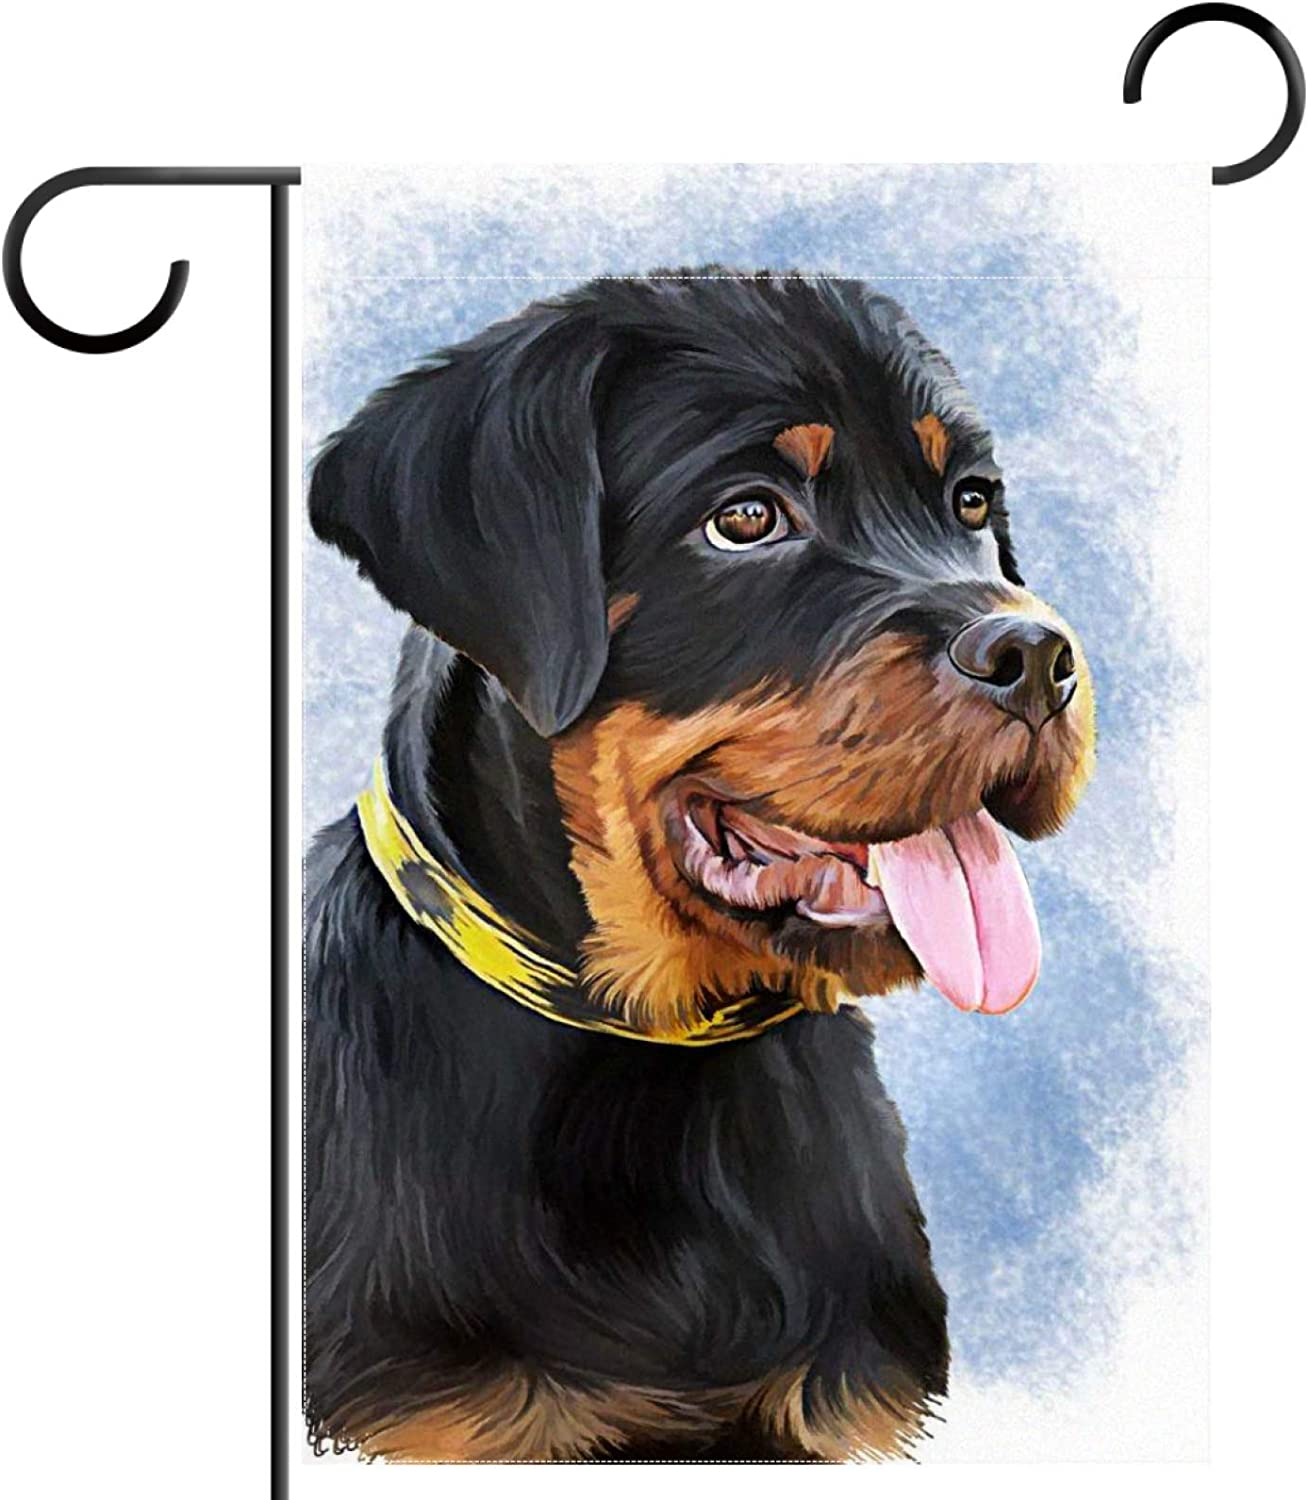 Garden Flag 28x40 inch,Rottweiler Dog,Yard Flag with Double Sided for Outside Farmhouse Patio Lawn Outdoor Home Decoration Gift